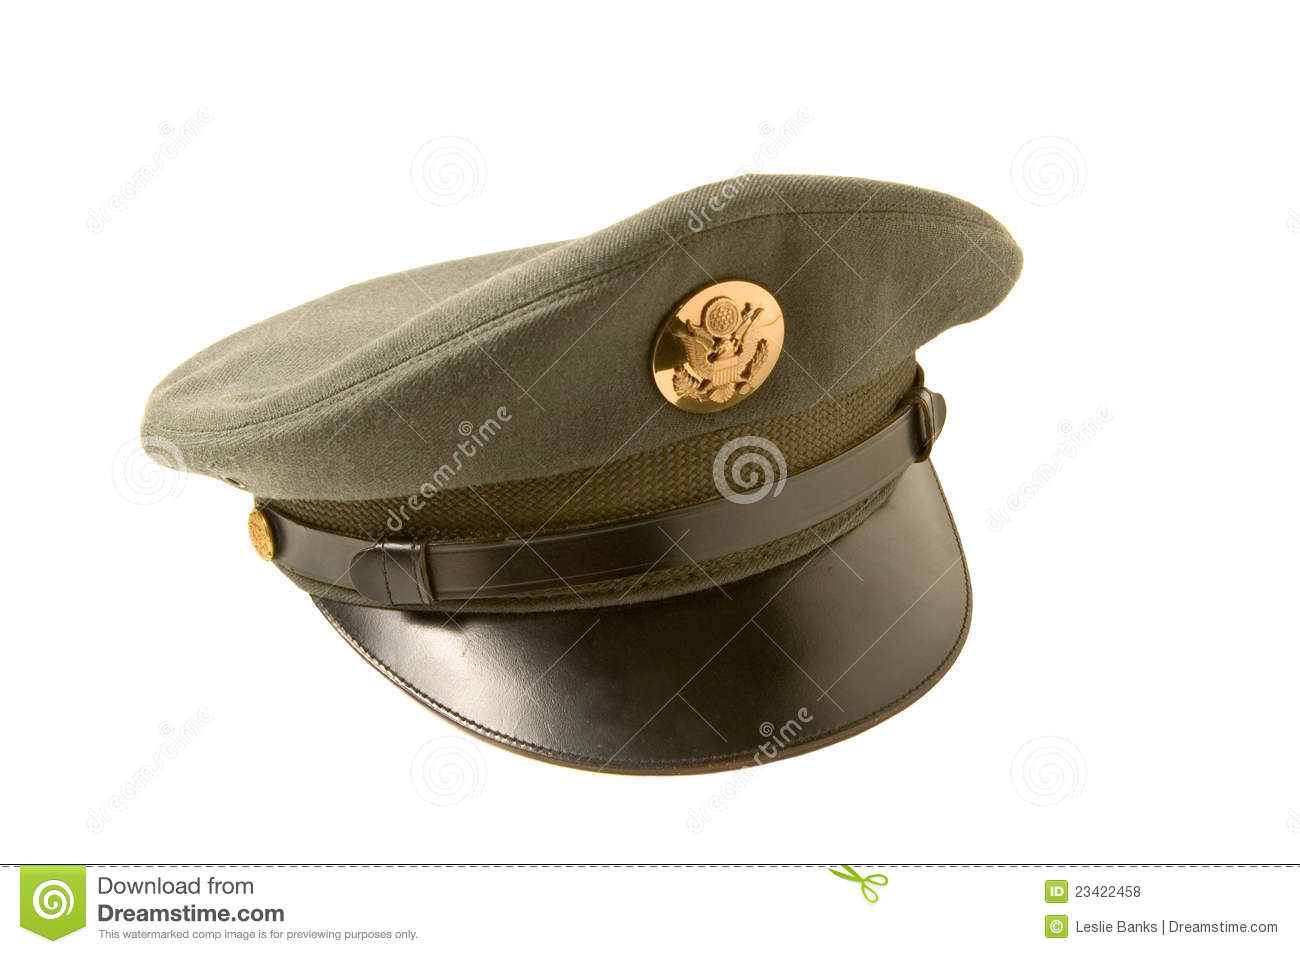 35c5d47a0846a0 Vintage army cap stock photo. Image of white, military - 23422458